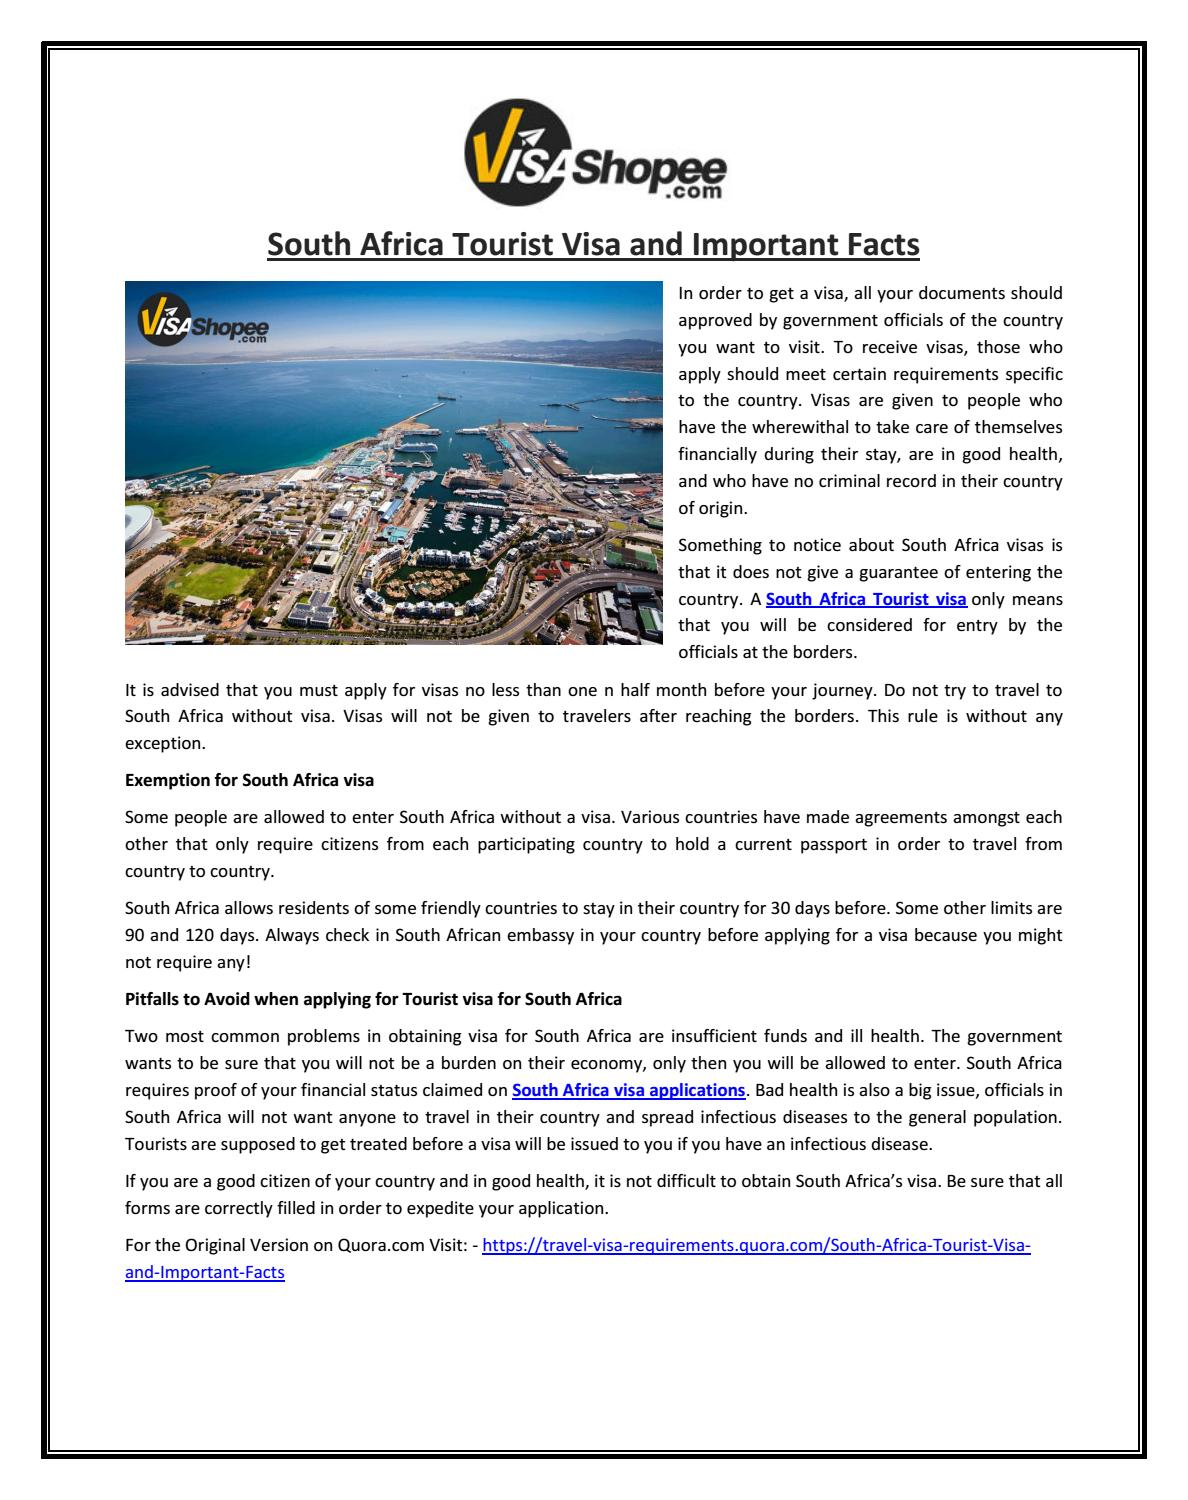 South Africa Tourist Visa And Important Facts By Visashopee Issuu